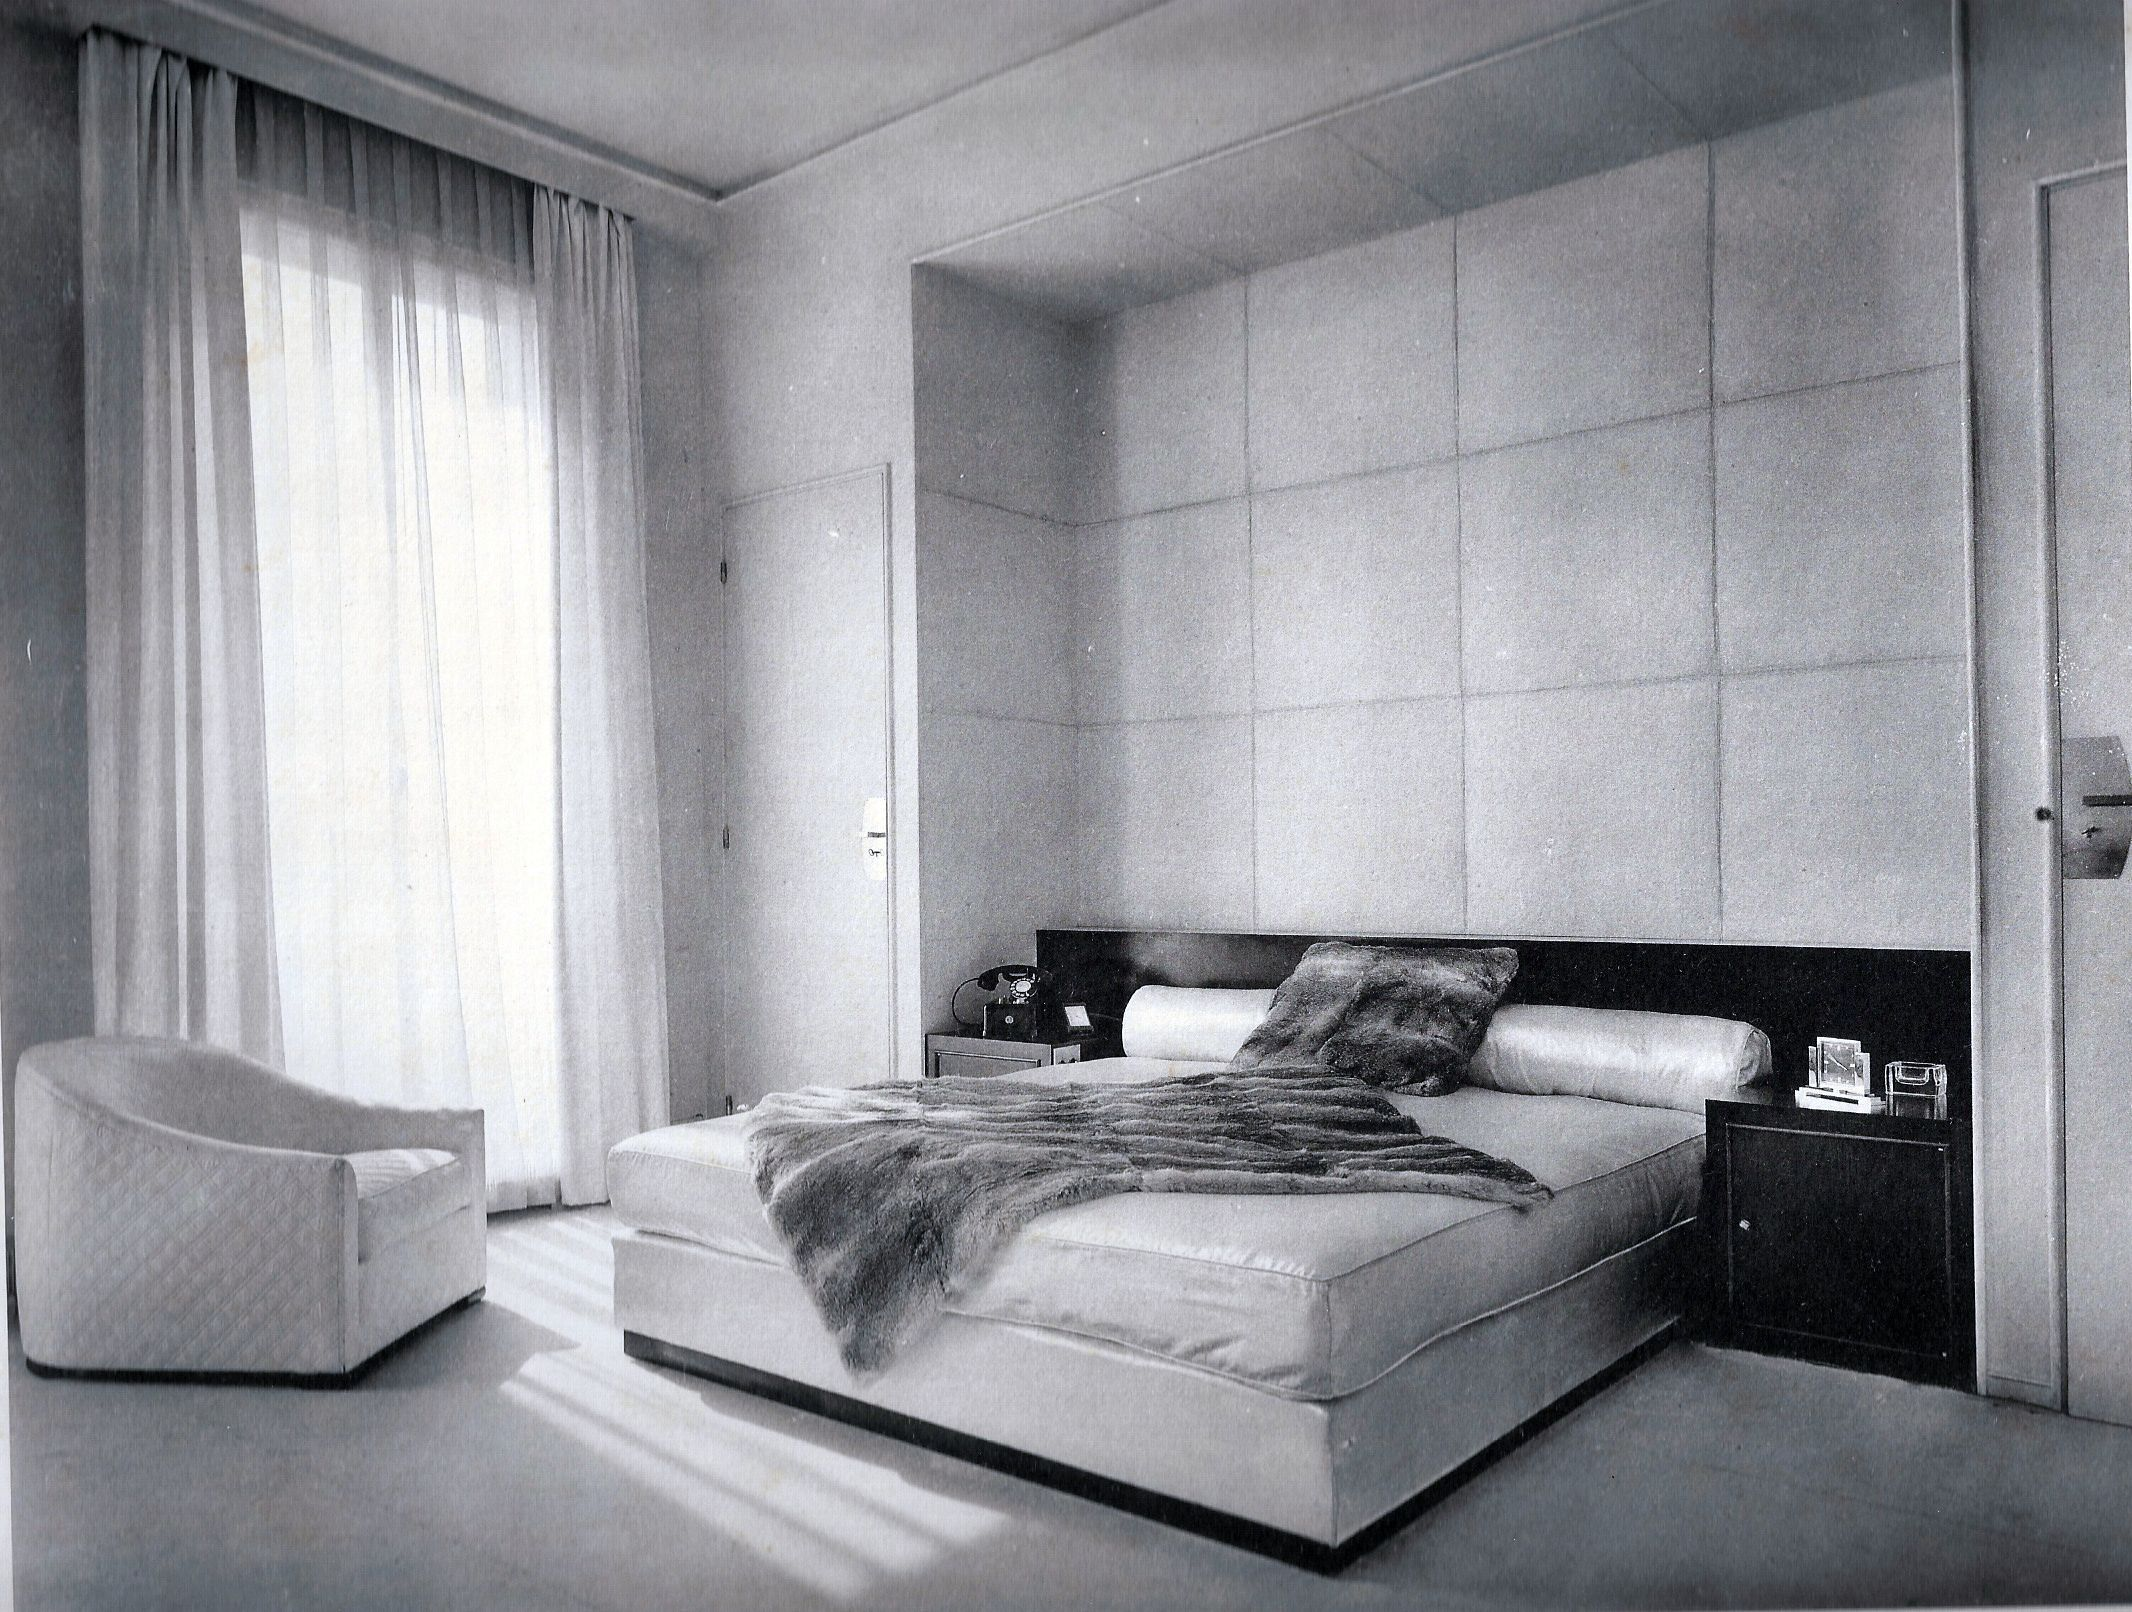 Art deco bedroom dupre lafon paris 1930 art deco for Deco interiors